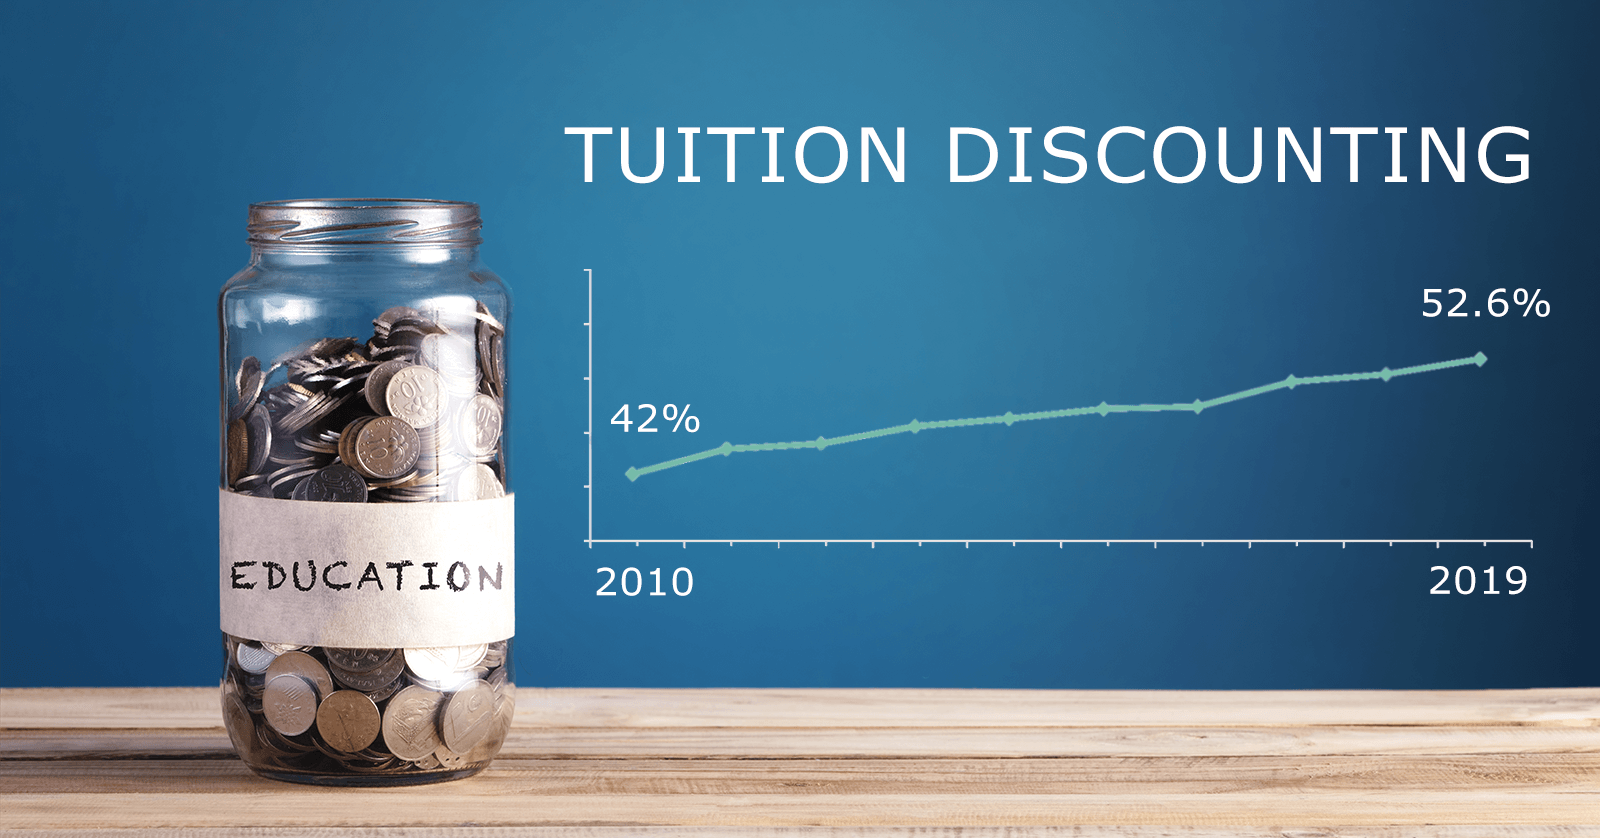 Tuition Discounting